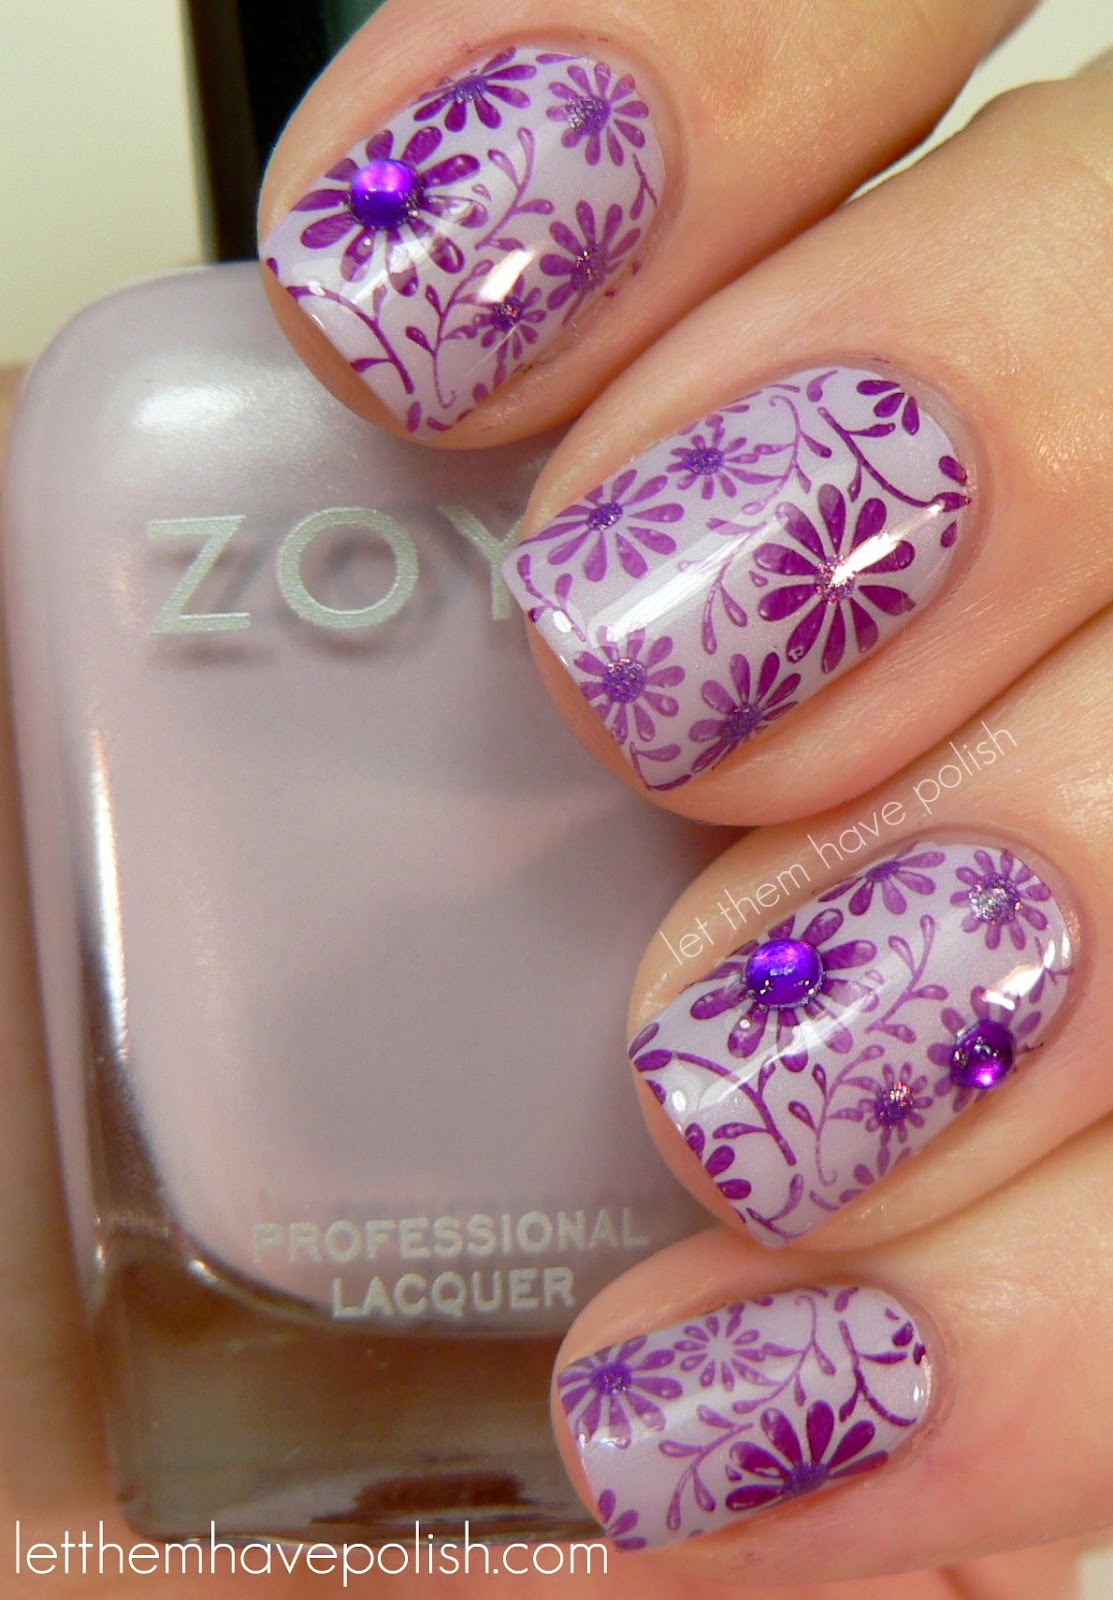 Floral Manicures For Spring And: Let Them Have Polish!: 31 Day Challenge! Day 6- Violet Nails